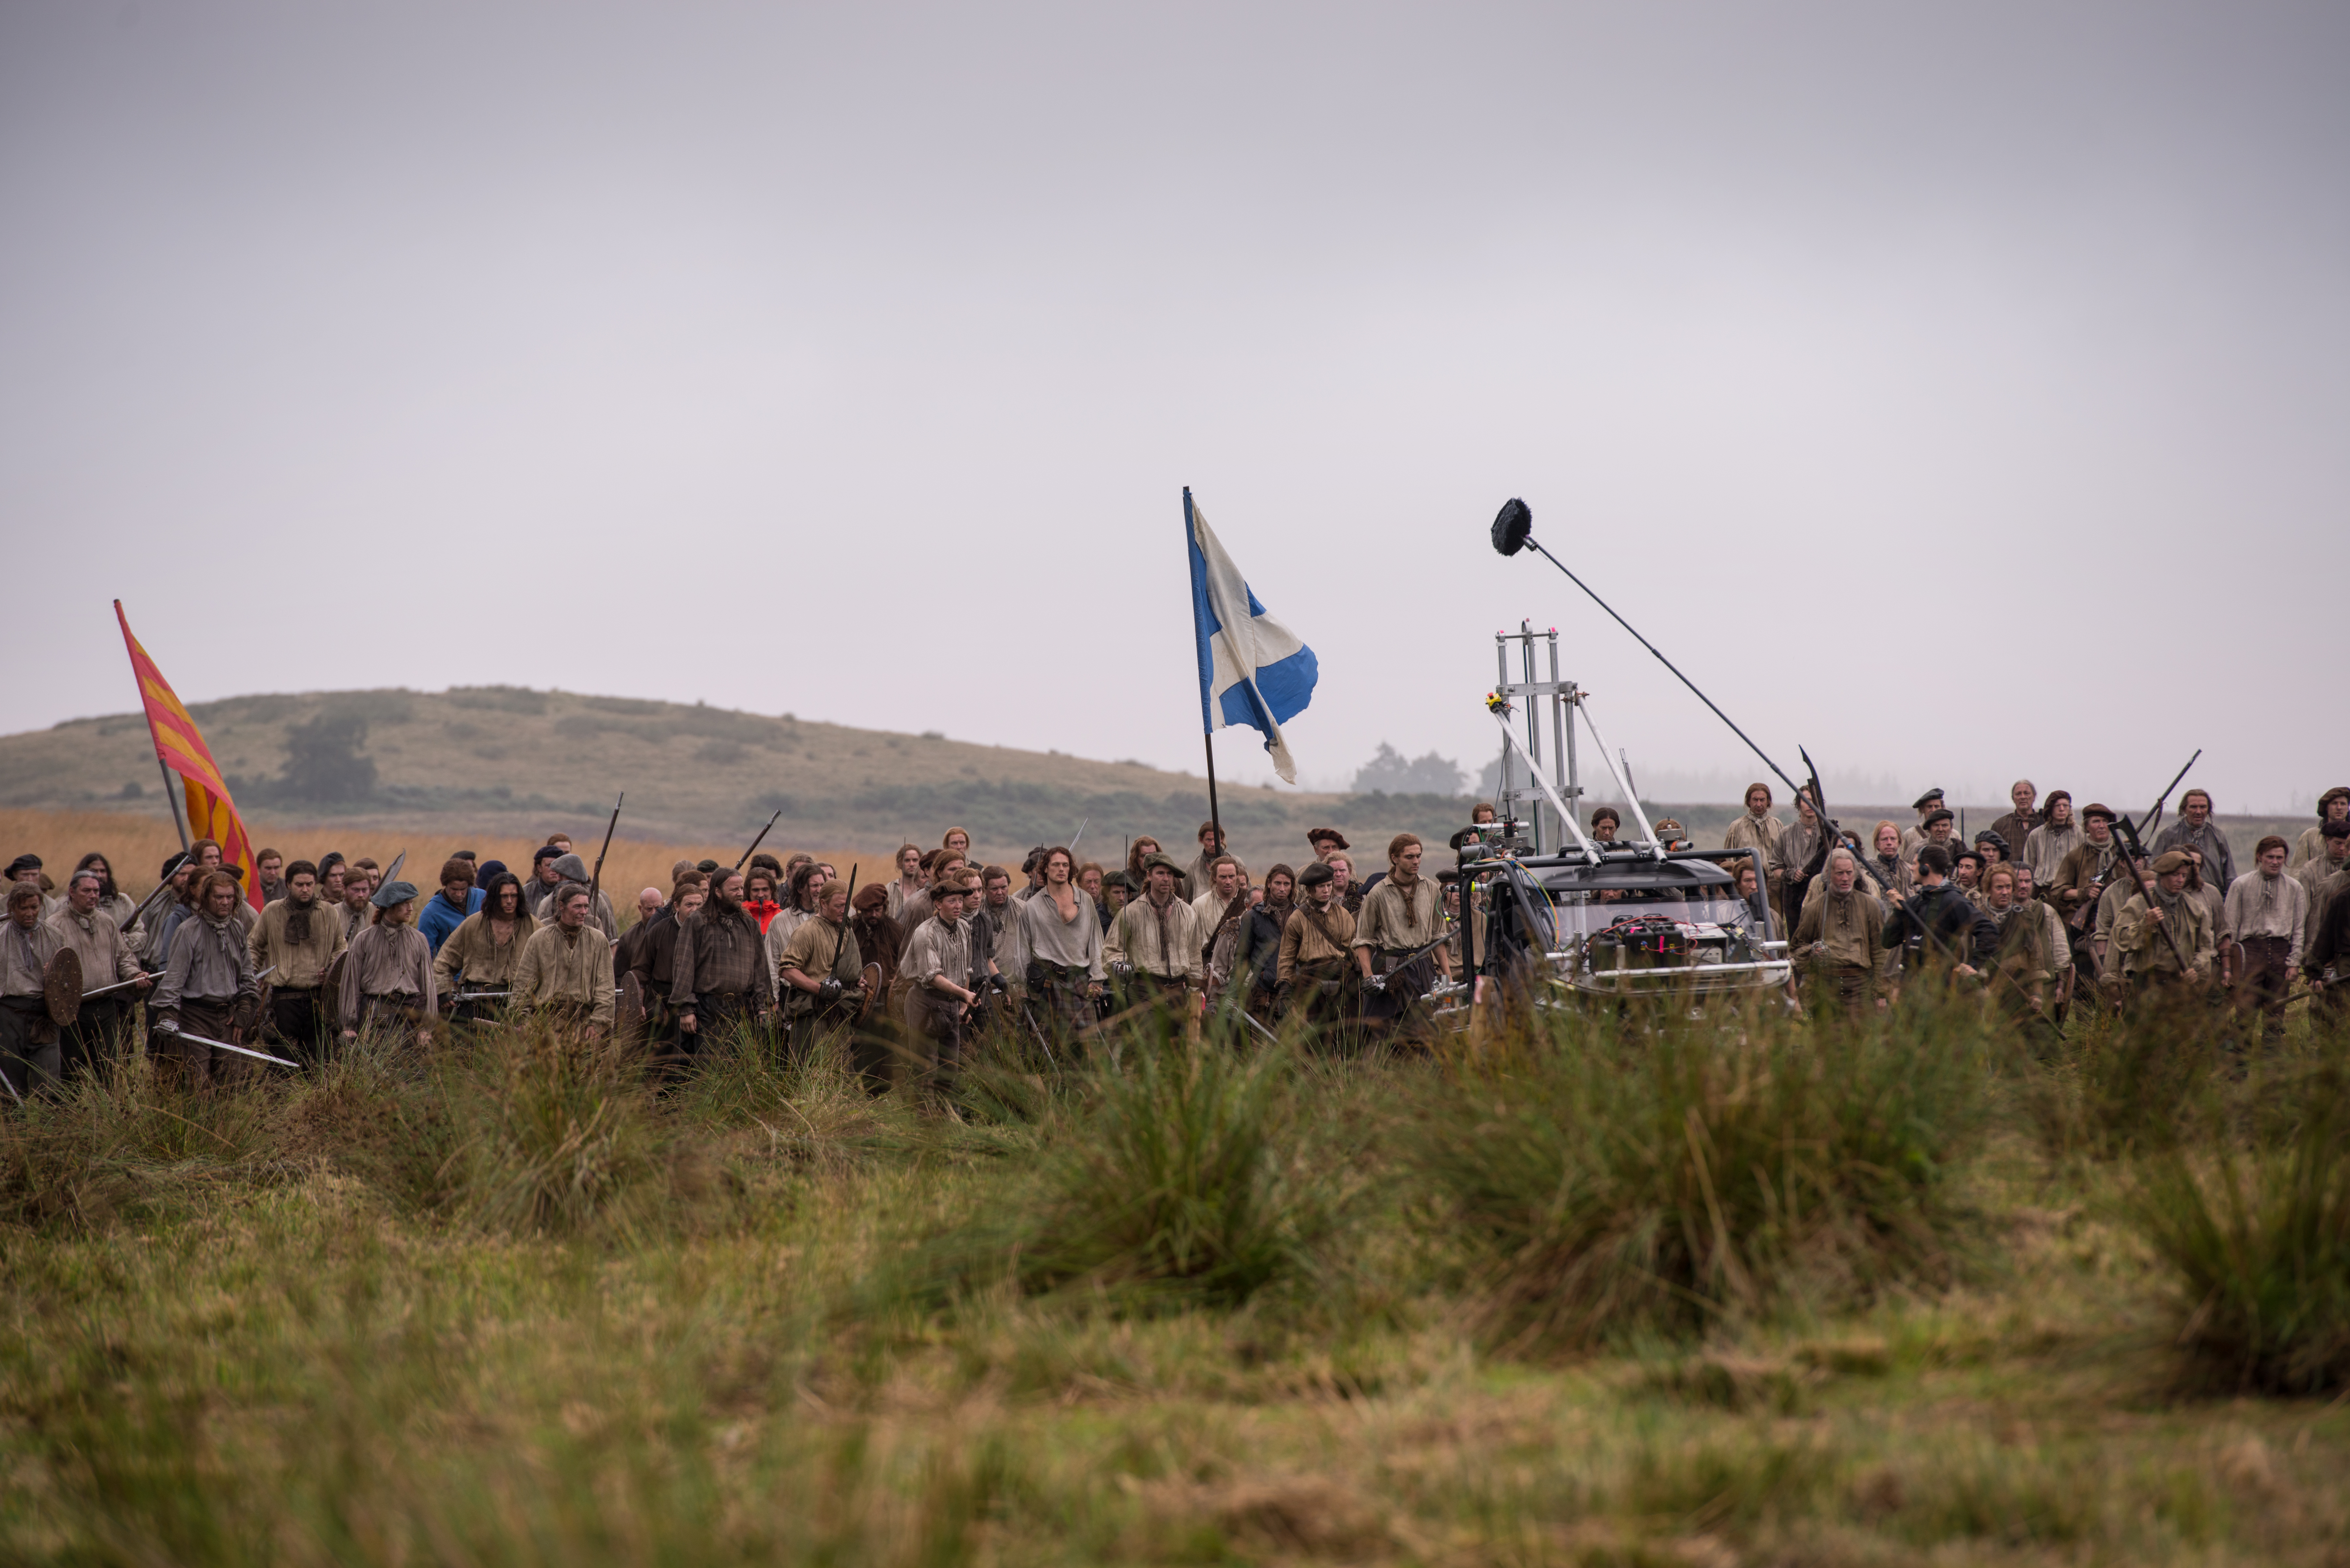 A camera vehicle maneuvers into position to capture the charge.